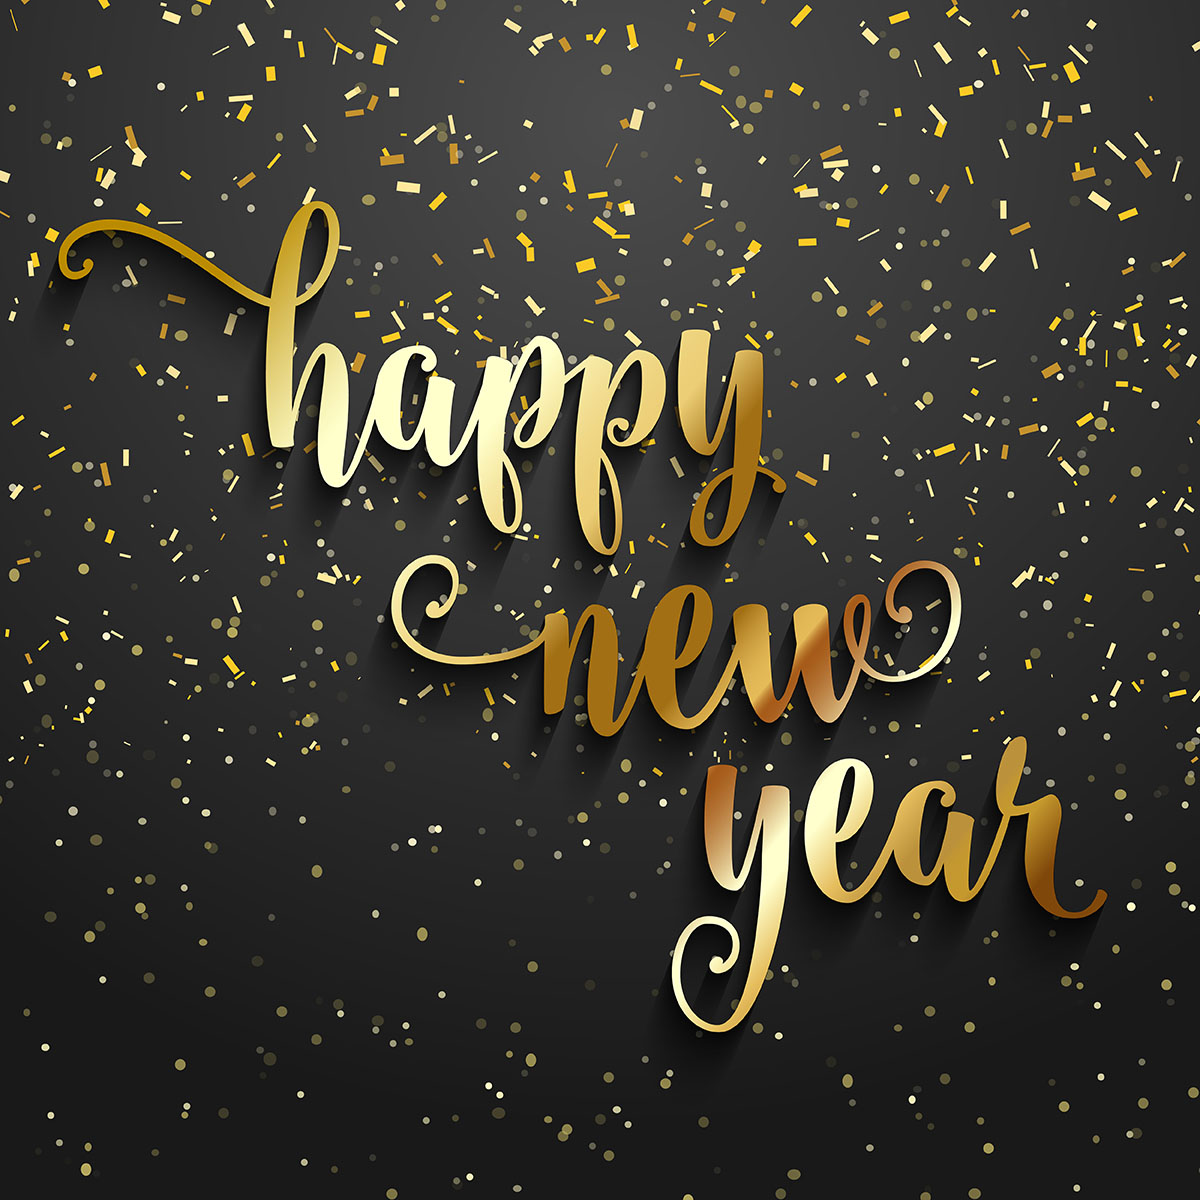 Happy New Year confetti background - Download Free Vectors ...